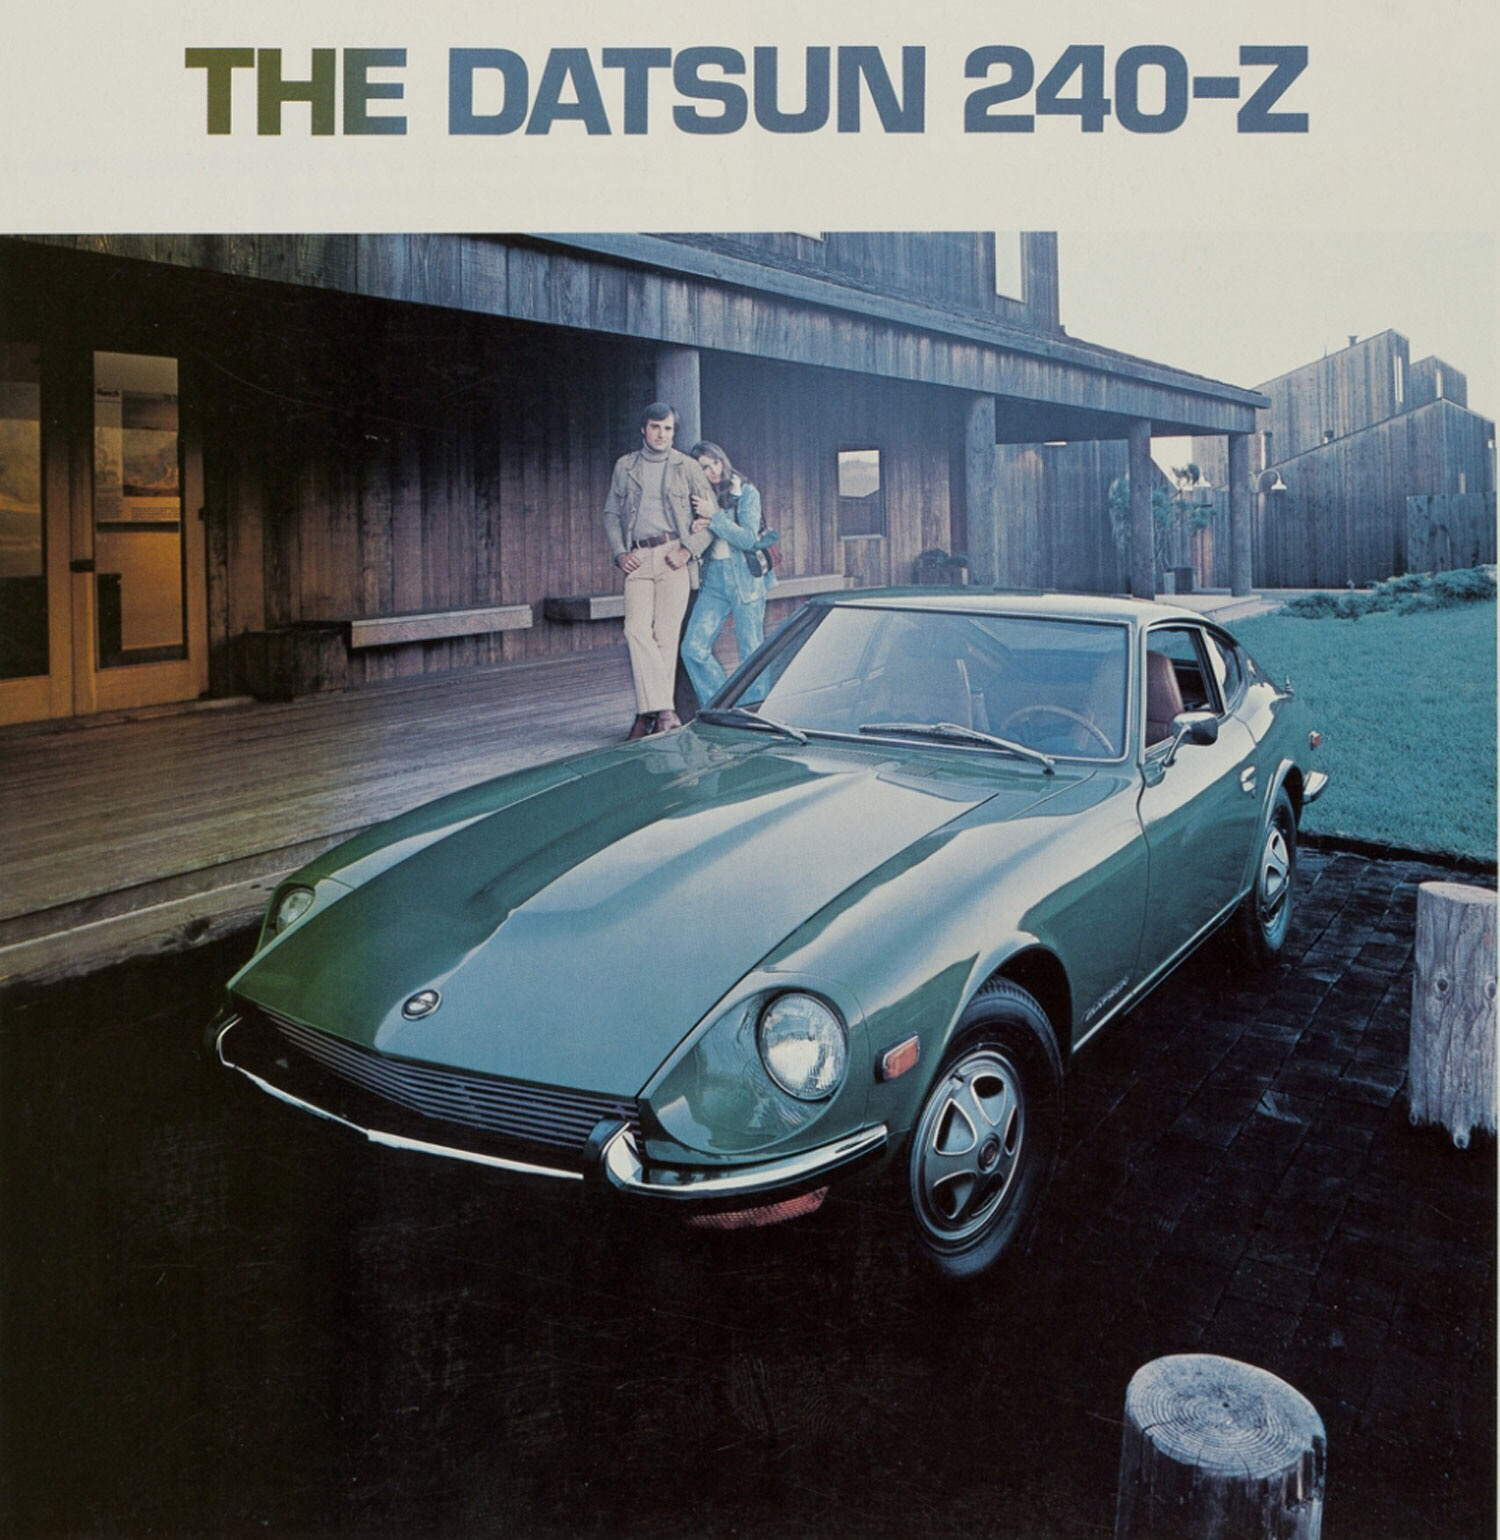 Back In October 22nd 1969 Nissan Released One Of Its Most Successful Cars Ever The Nissan Fairlady Z Or Known As The Datsun 240z Here In The States